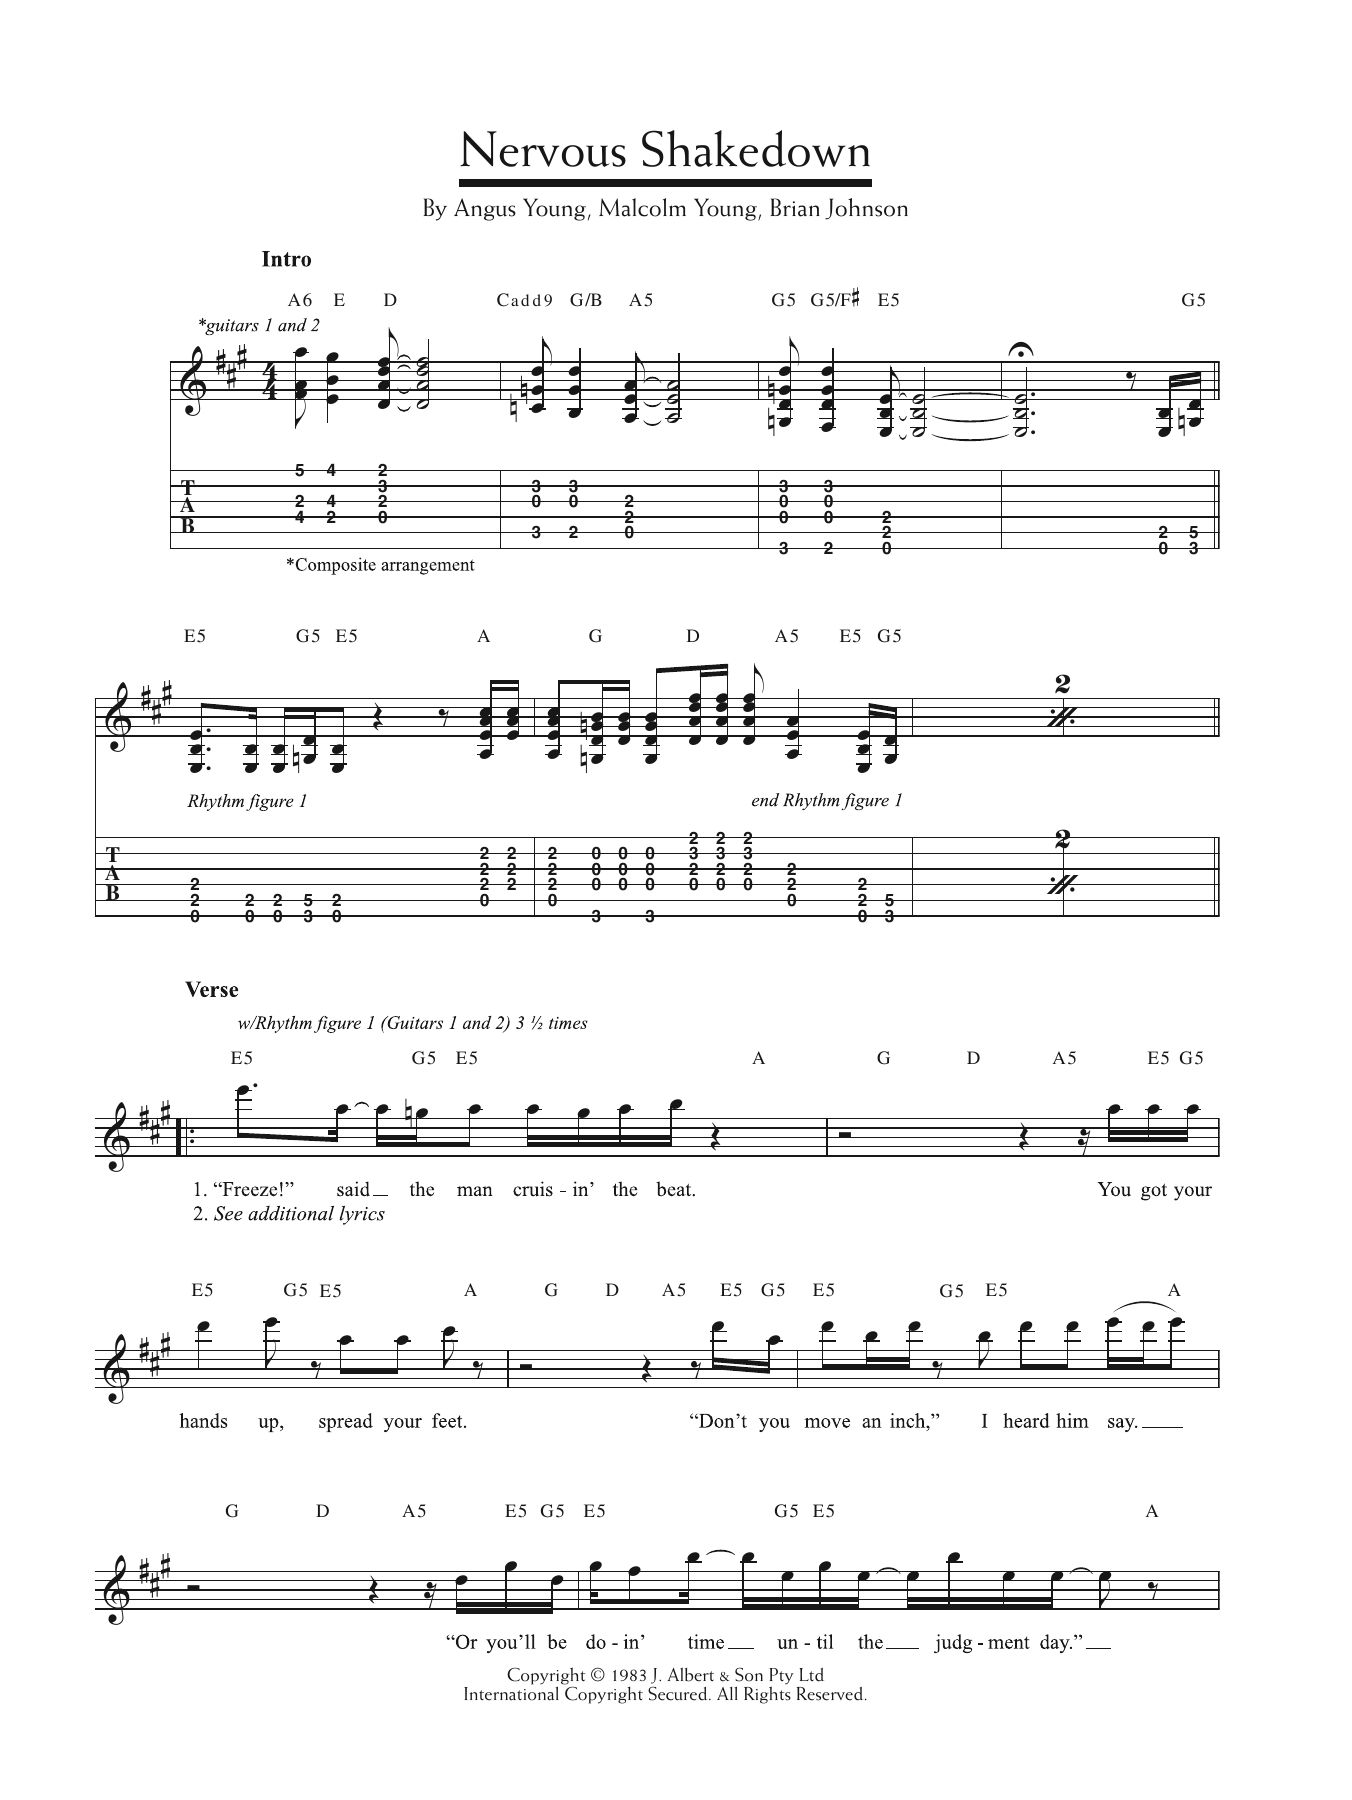 Nervous Shakedown Sheet Music